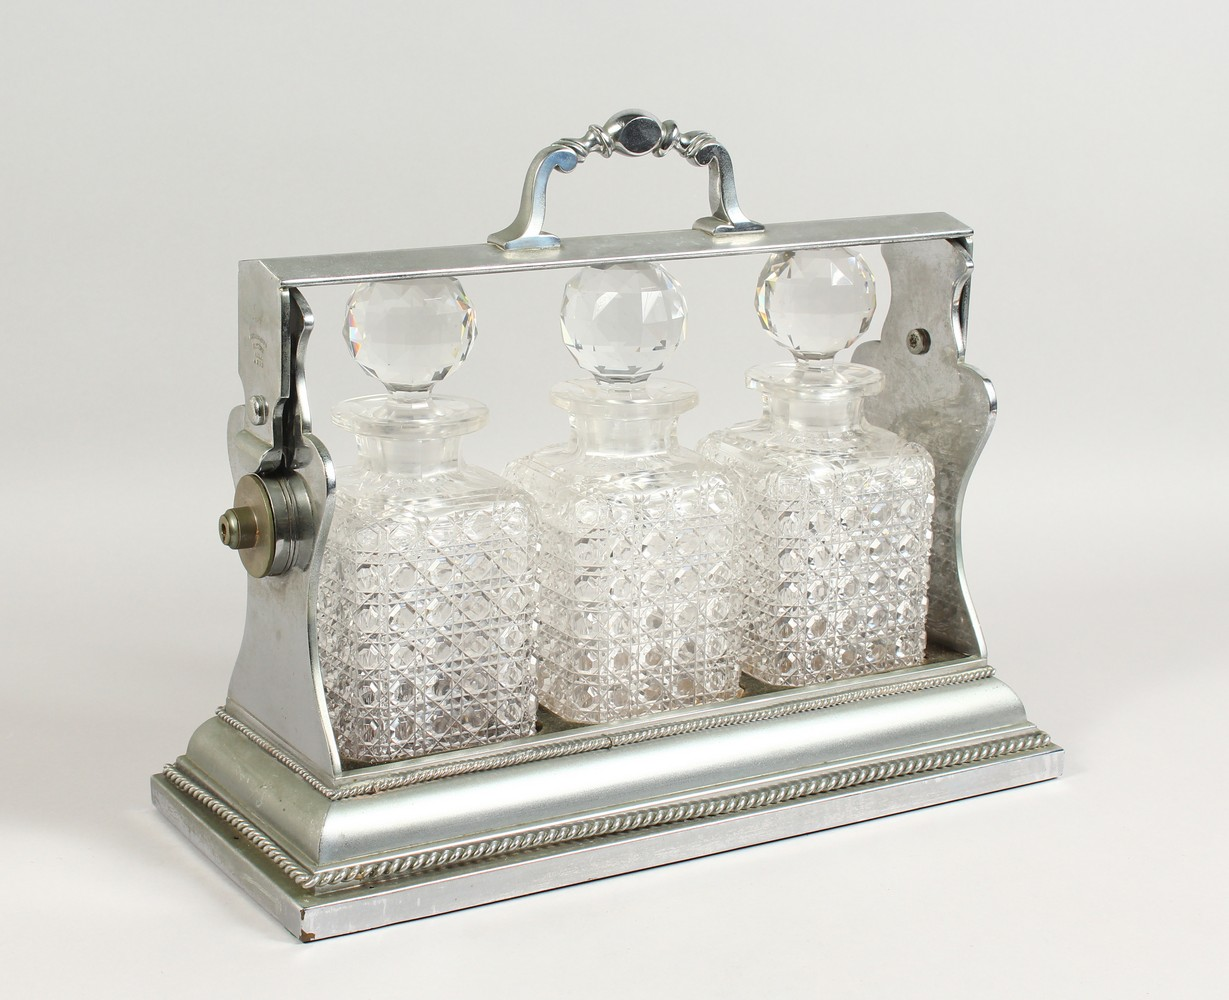 Lot 1570 - A LARGE TANTALUS, with three cut glass whisky decanters and stoppers. Marked Betjemann 4213.